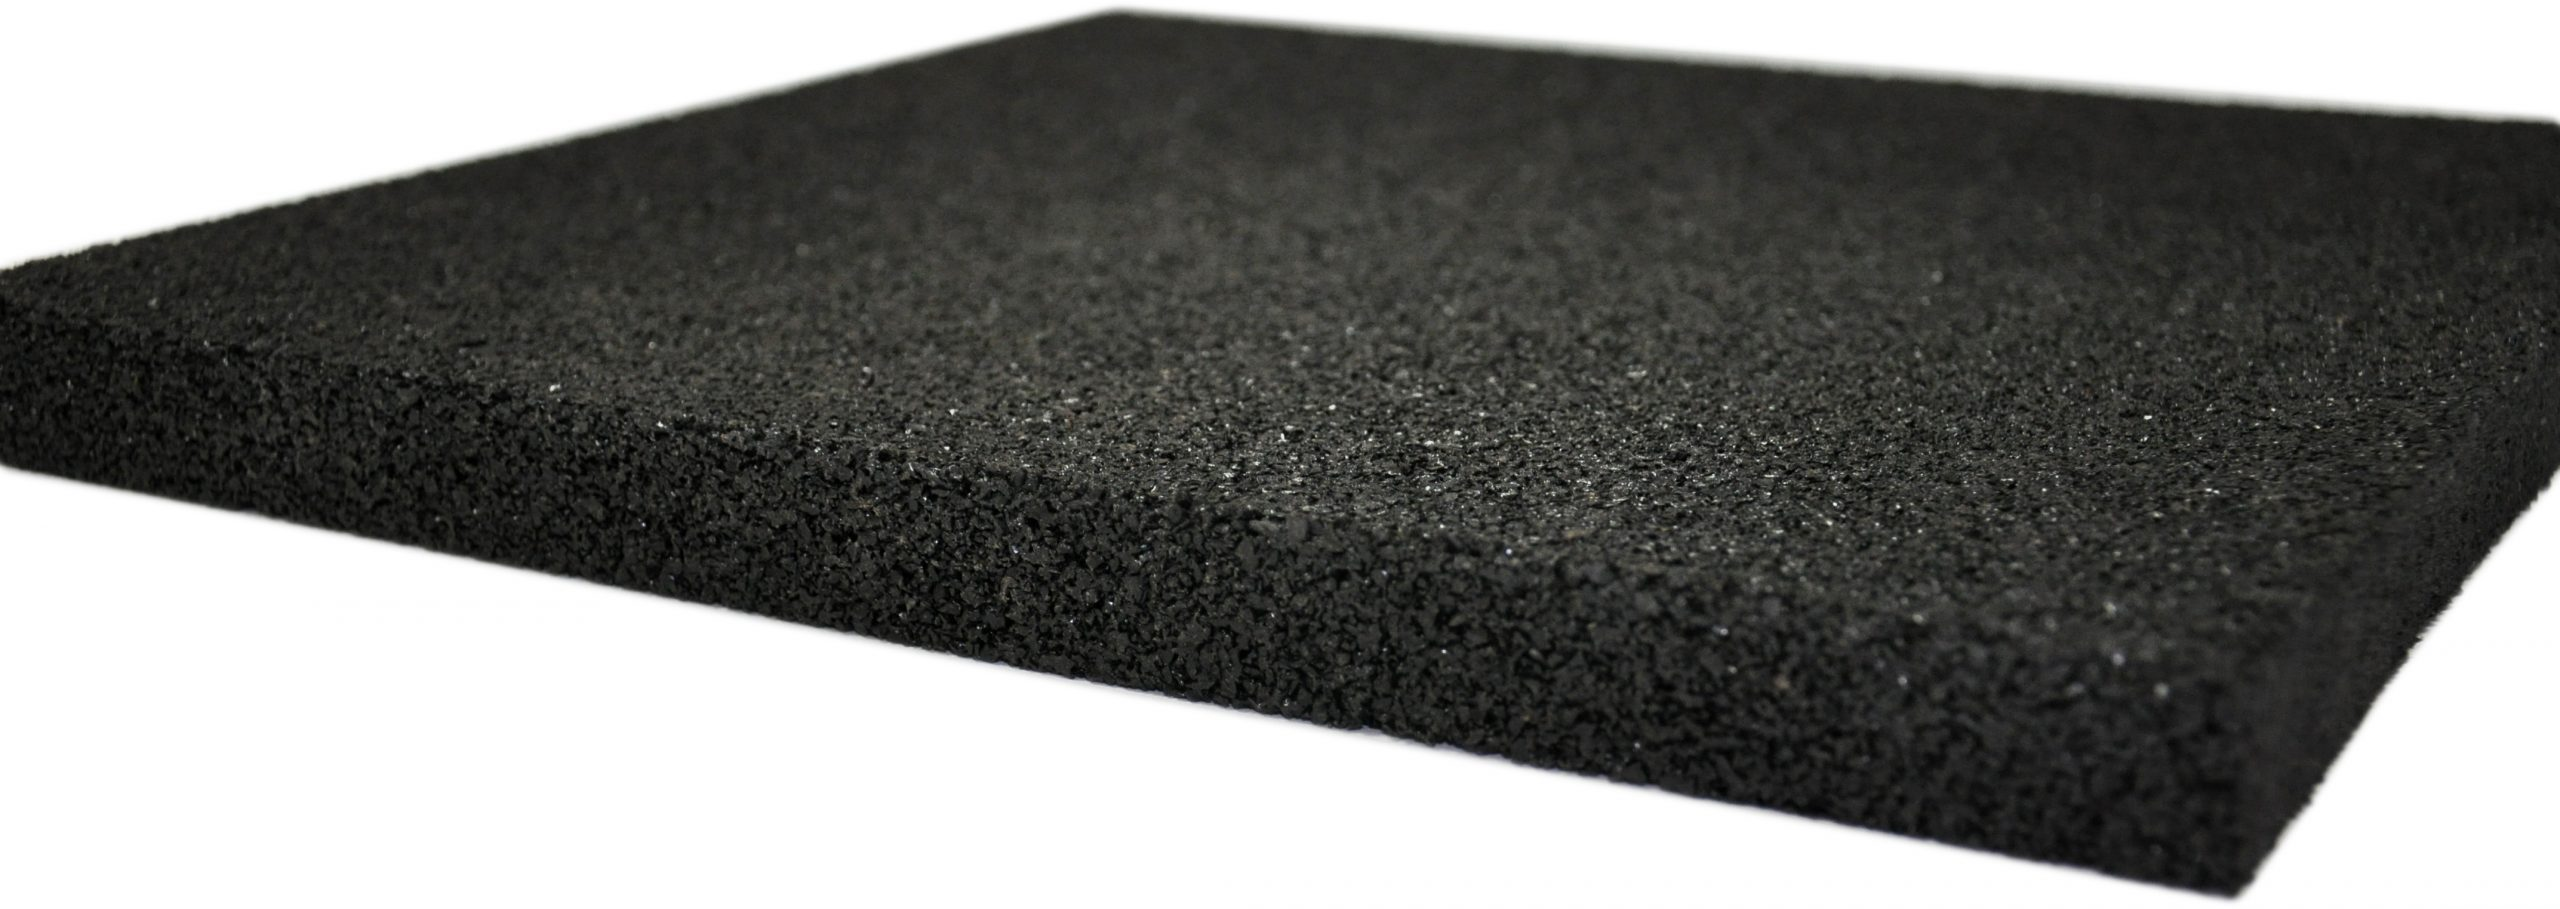 Protecto Mat protection board for waterproofing membranes